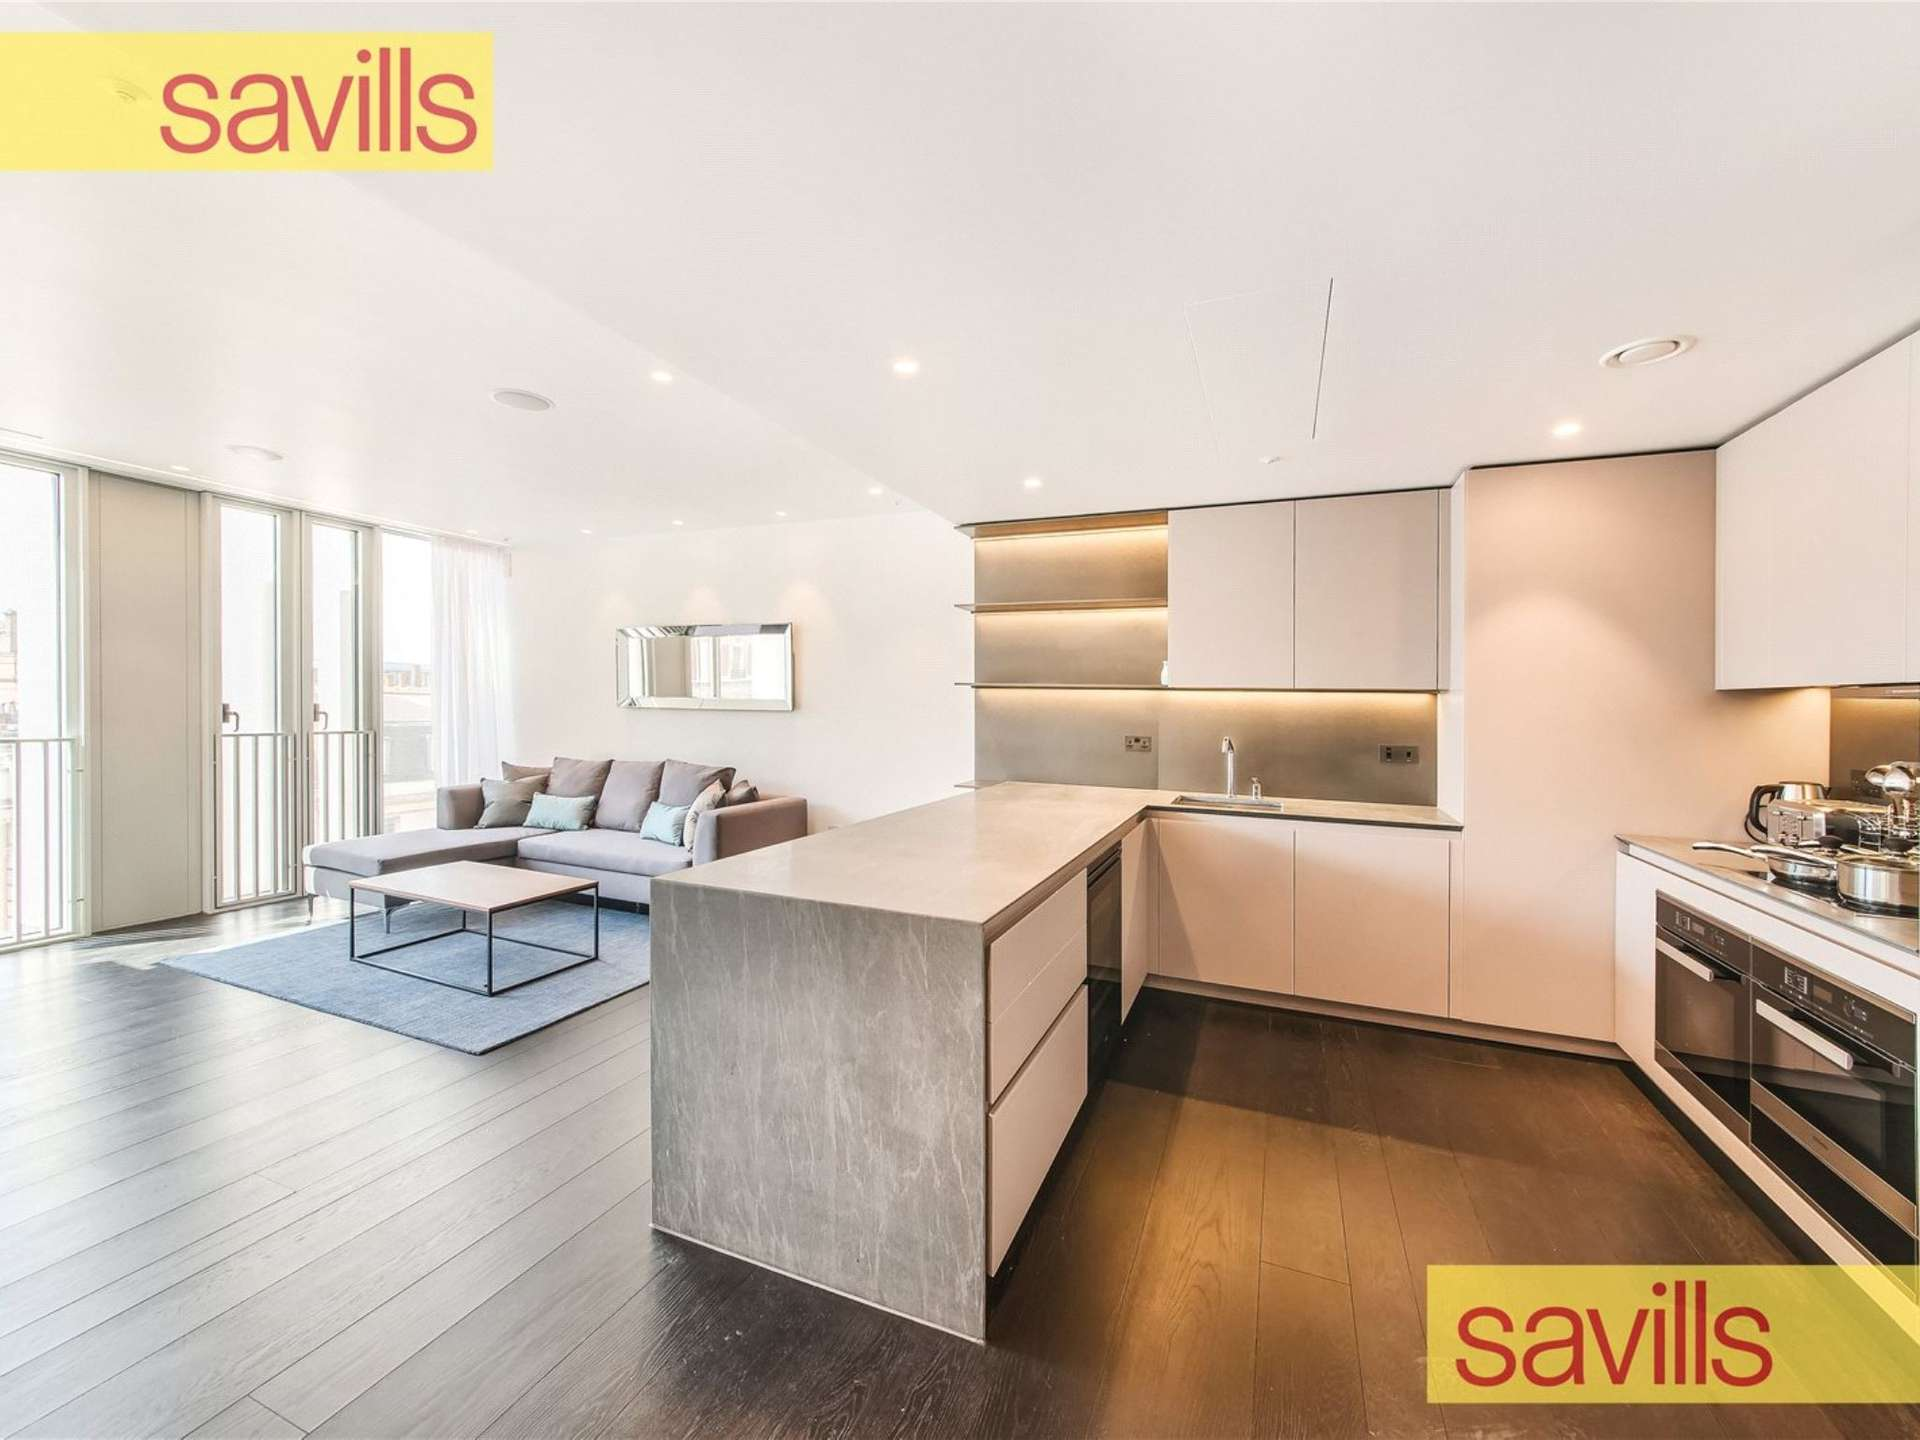 Savills Nova 83 Buckingham Palace Road